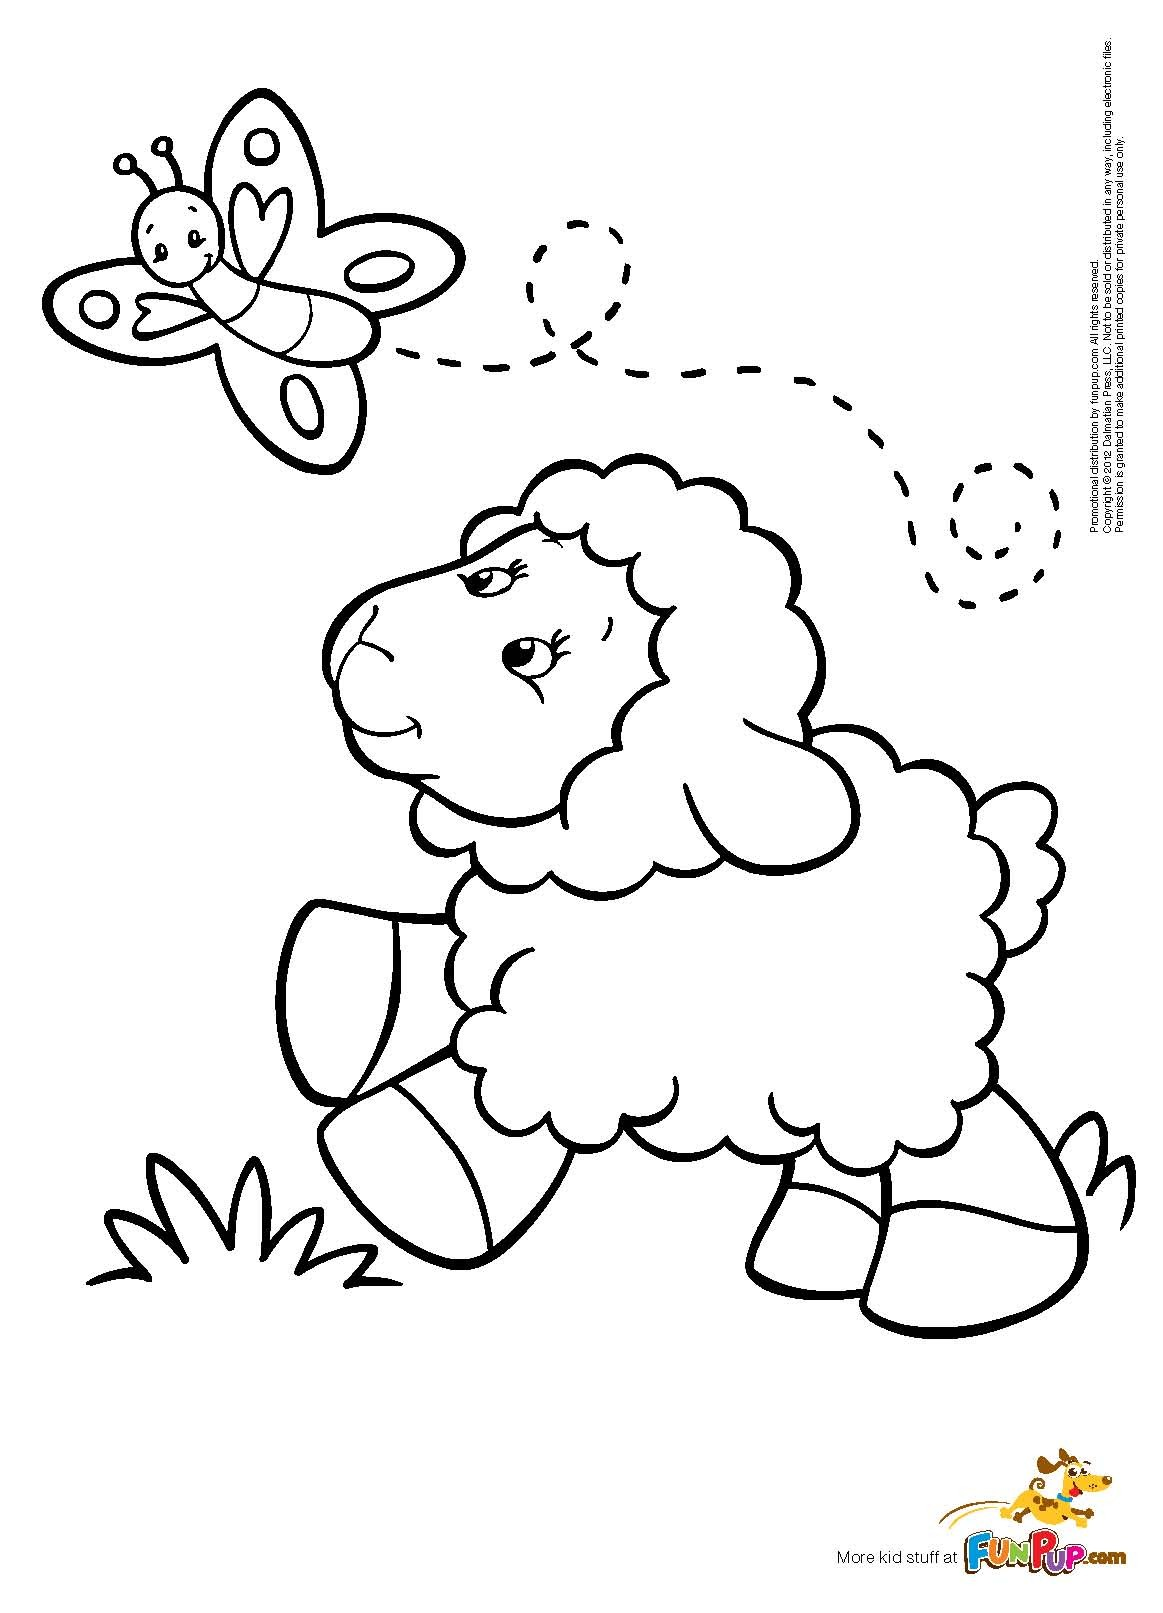 Drawn sheep coloring Free Butterfly Coloring Coloring Sheep